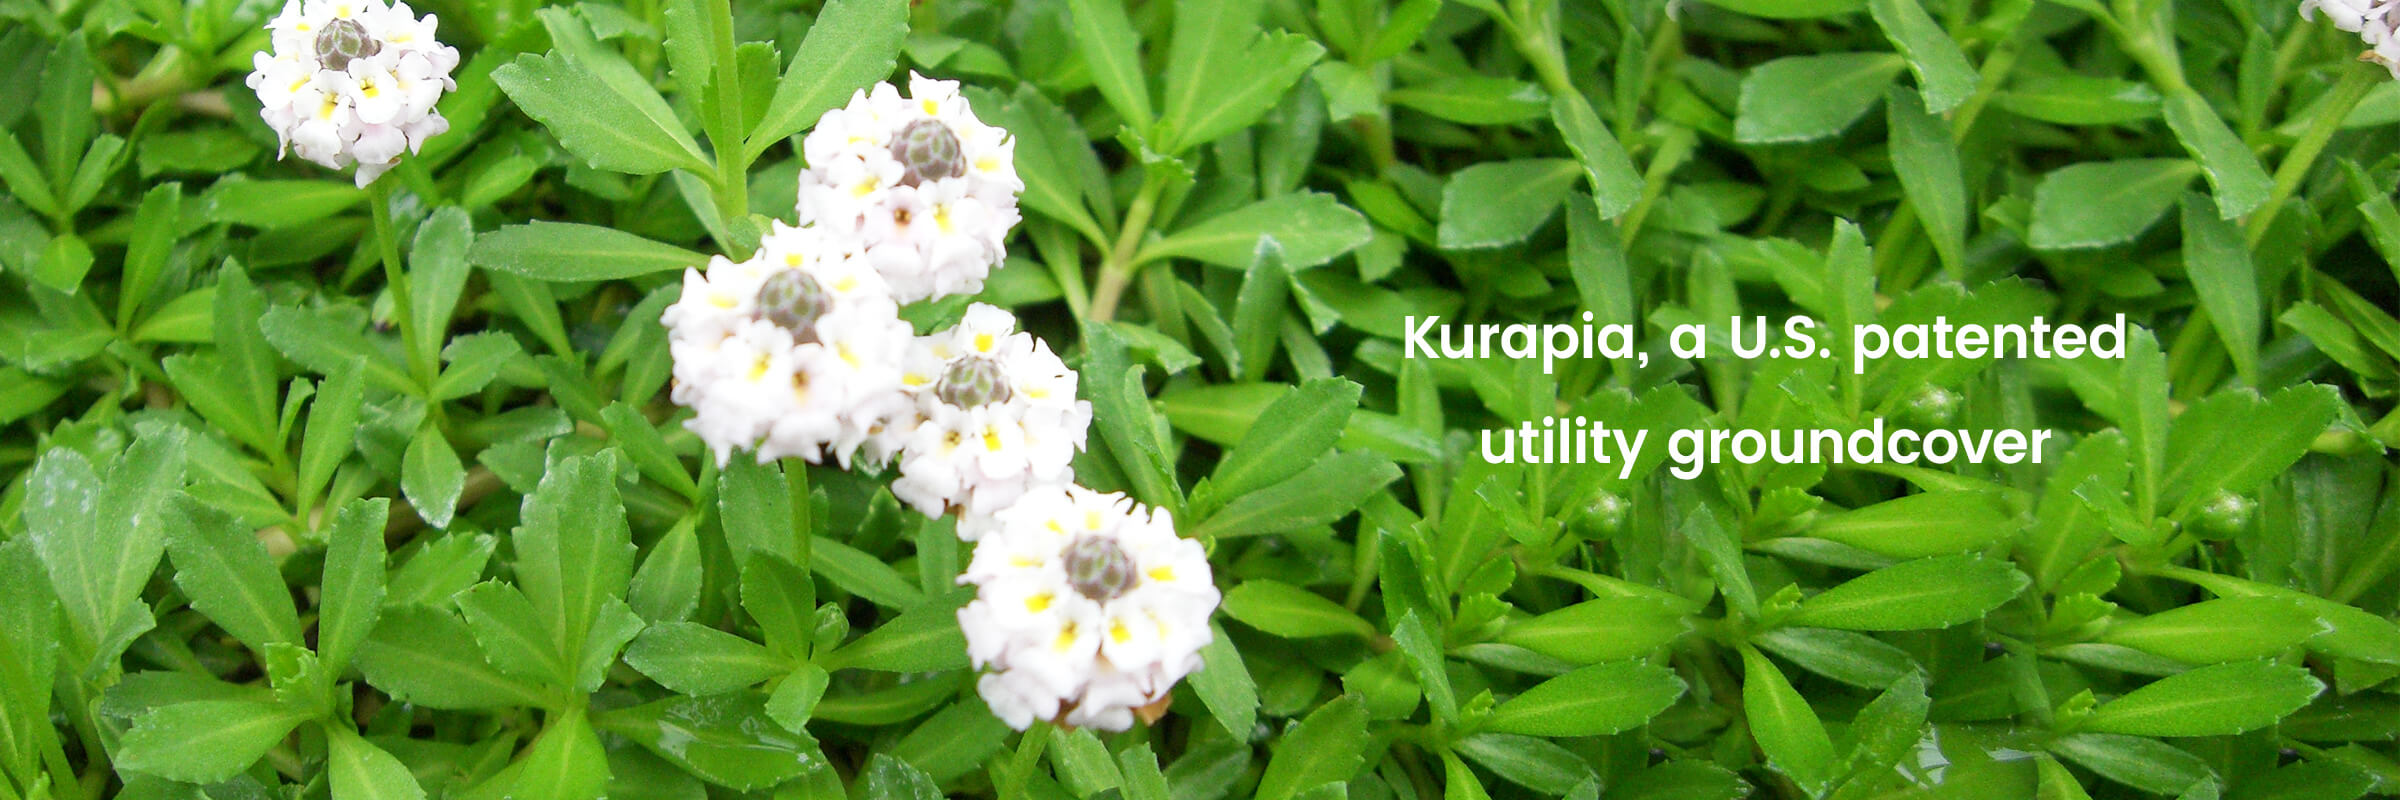 Seed clipart ground cover. Kurapia utility groundcover a